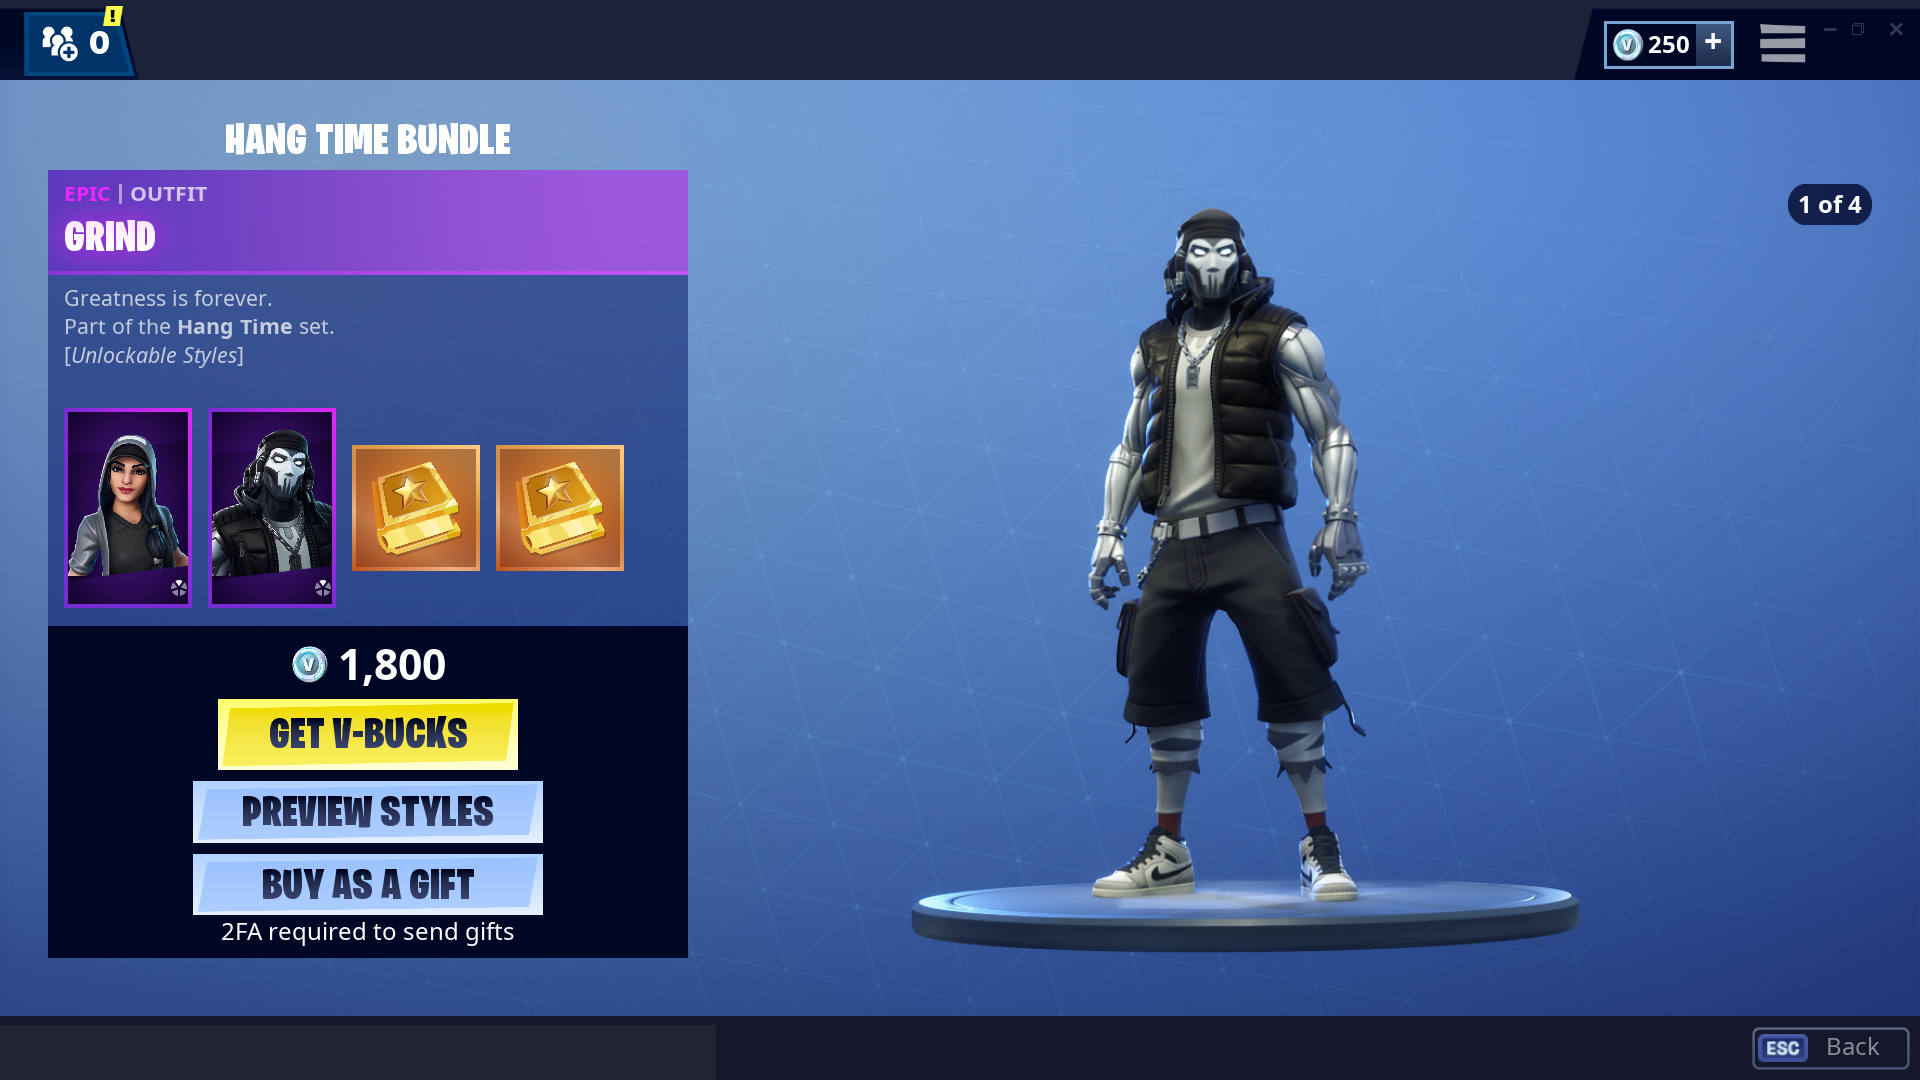 Fortnite Client fortnite x jumpman collaboration releases with downtown drop ltm